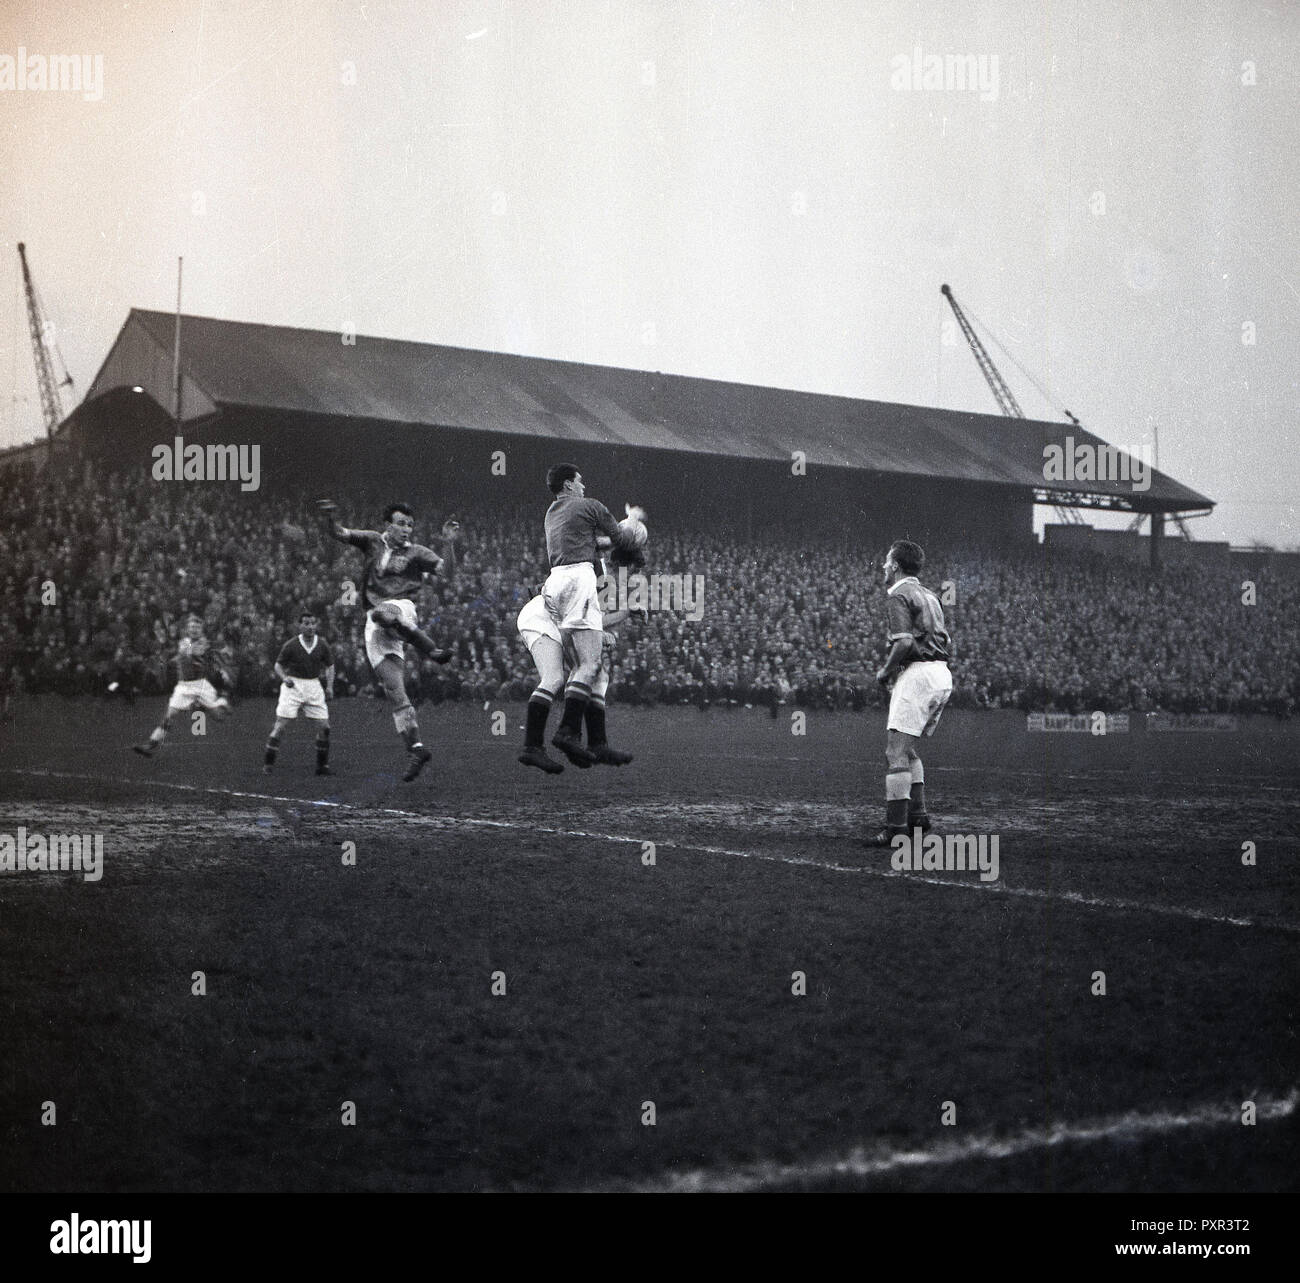 1950s, historical, a football match at the Old Den, New Cross, London SE14, the home of Millwall FC, established in 1885. The large ground which opened in 1910 and while in use was known as 'The Den', could take 47,000 spectators, with over 43,000 of these standing. The main stand full of spectators can be seen in the picture. - Stock Image